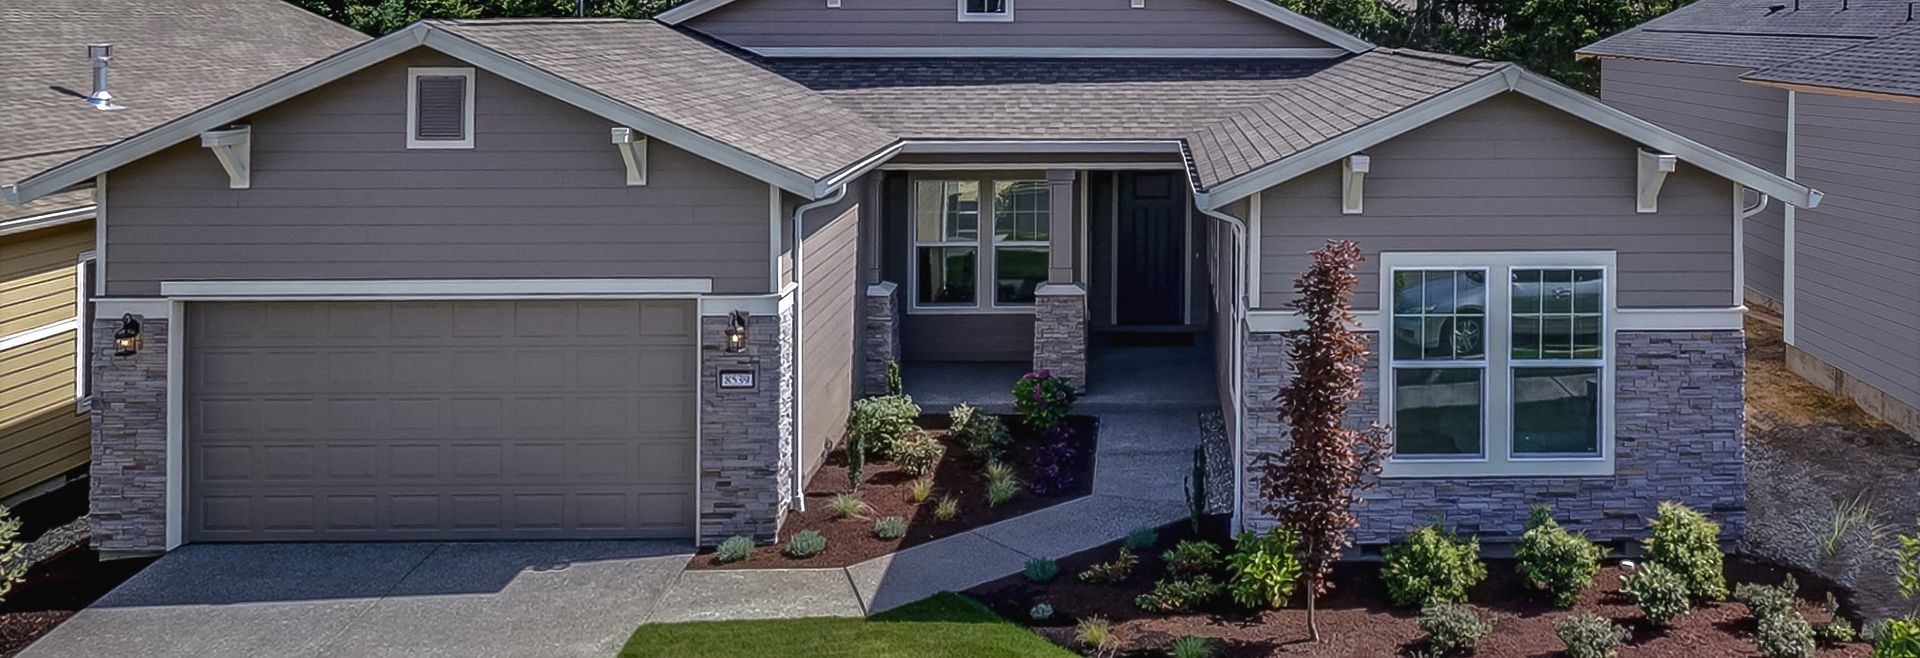 Jubilee by Shea Homes in Lacey, WA